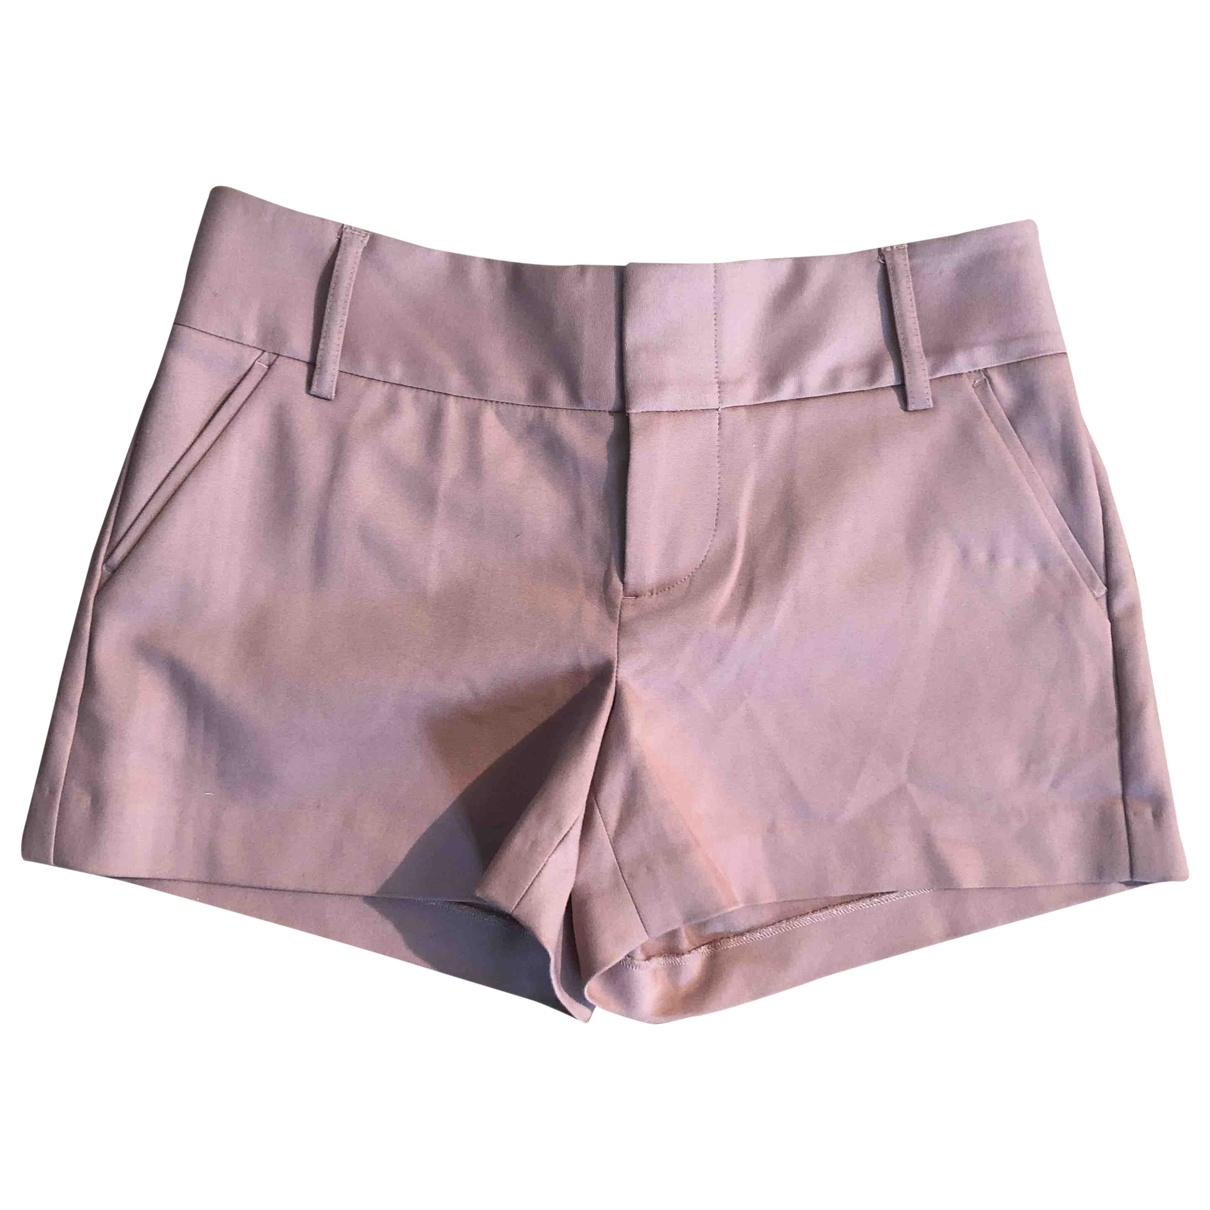 Alice & Olivia \N Pink Cotton Shorts for Women 0 0-5